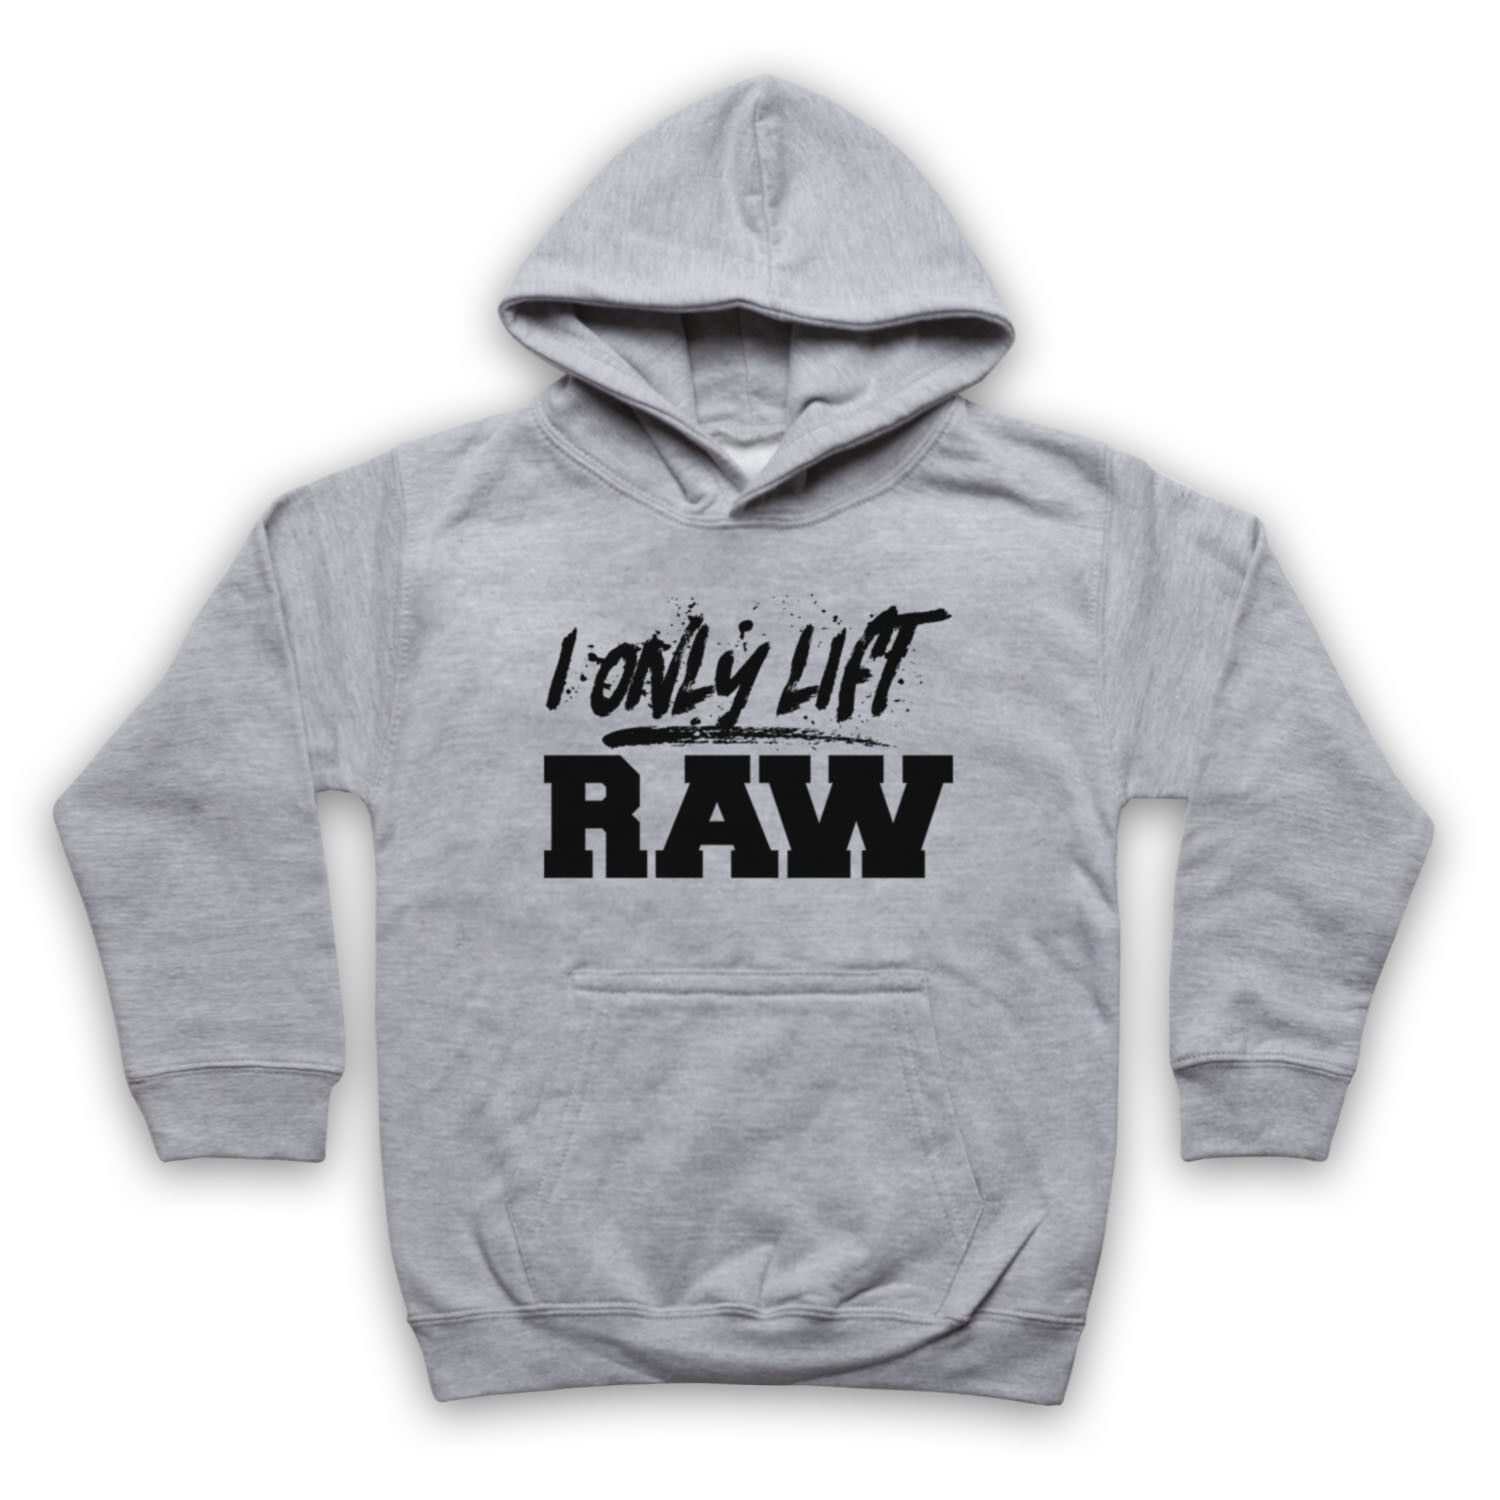 I ONLY LIFT RAW BODYBUILDING WEIGHTLIFTING SLOGAN ADULTS KIDS KIDS KIDS HOODIE 70513a